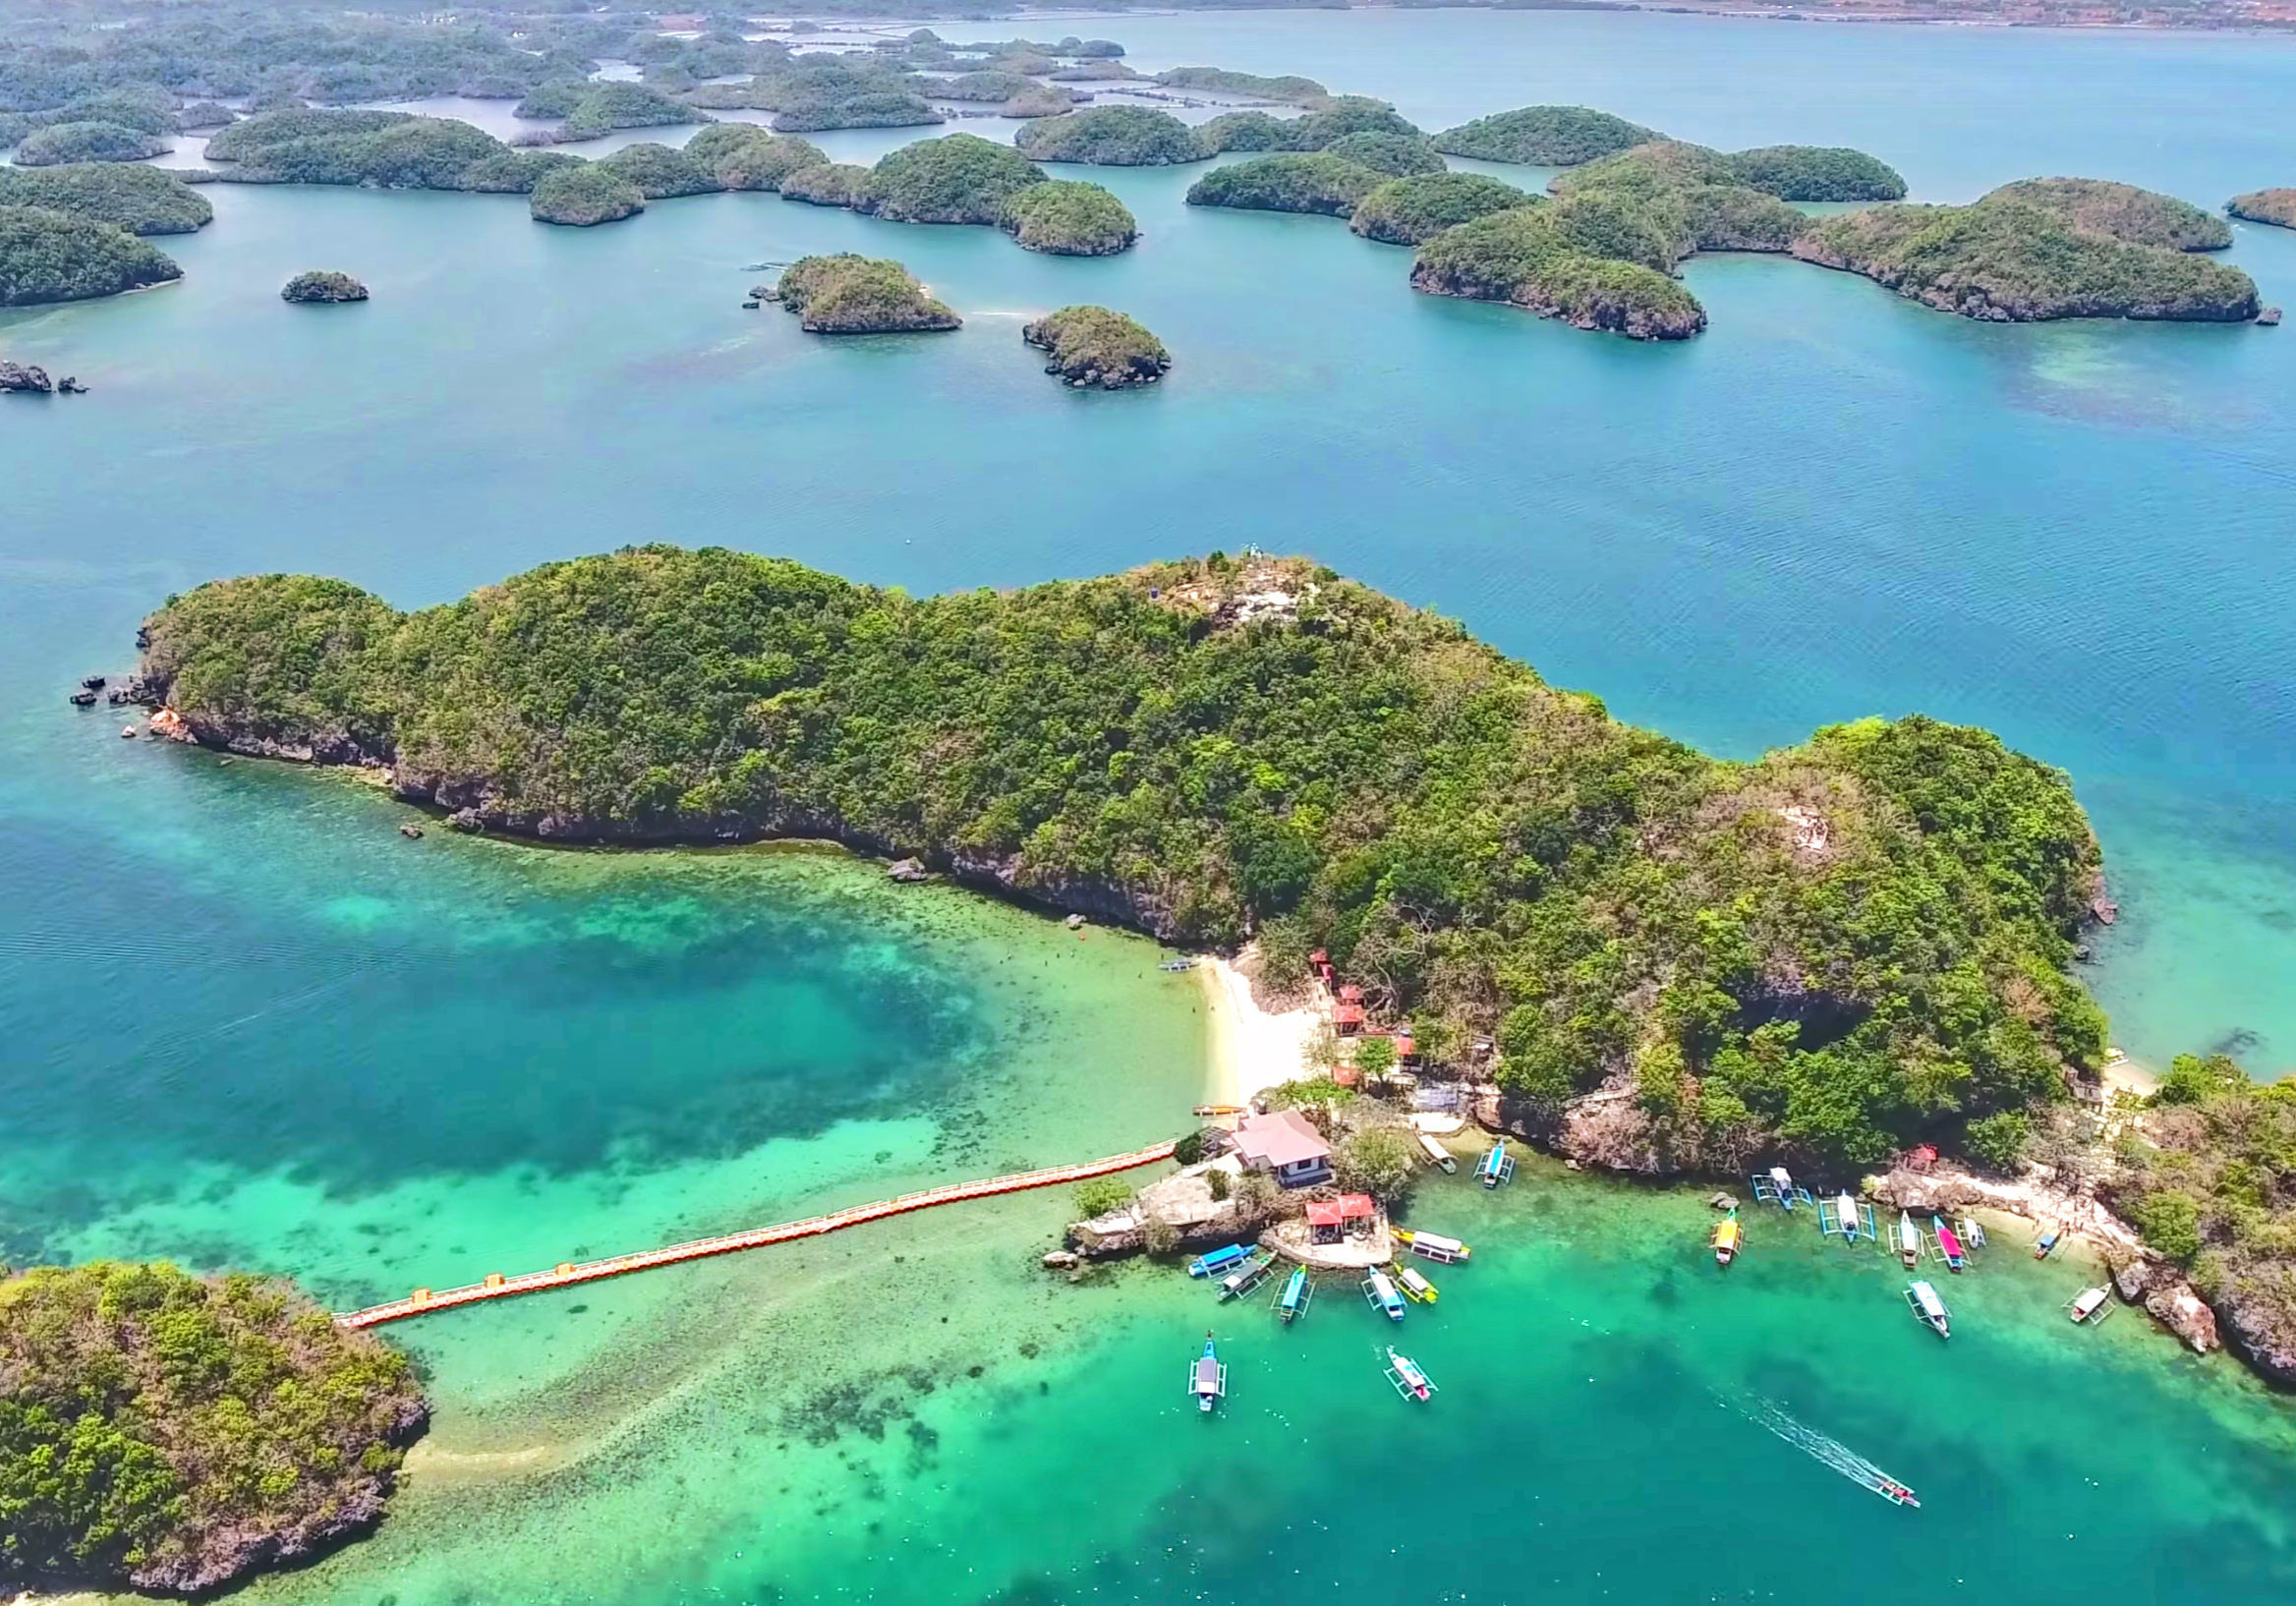 Hundred-Islands-Philippines-Aerial-Tour-Project-LUPAD-JPG